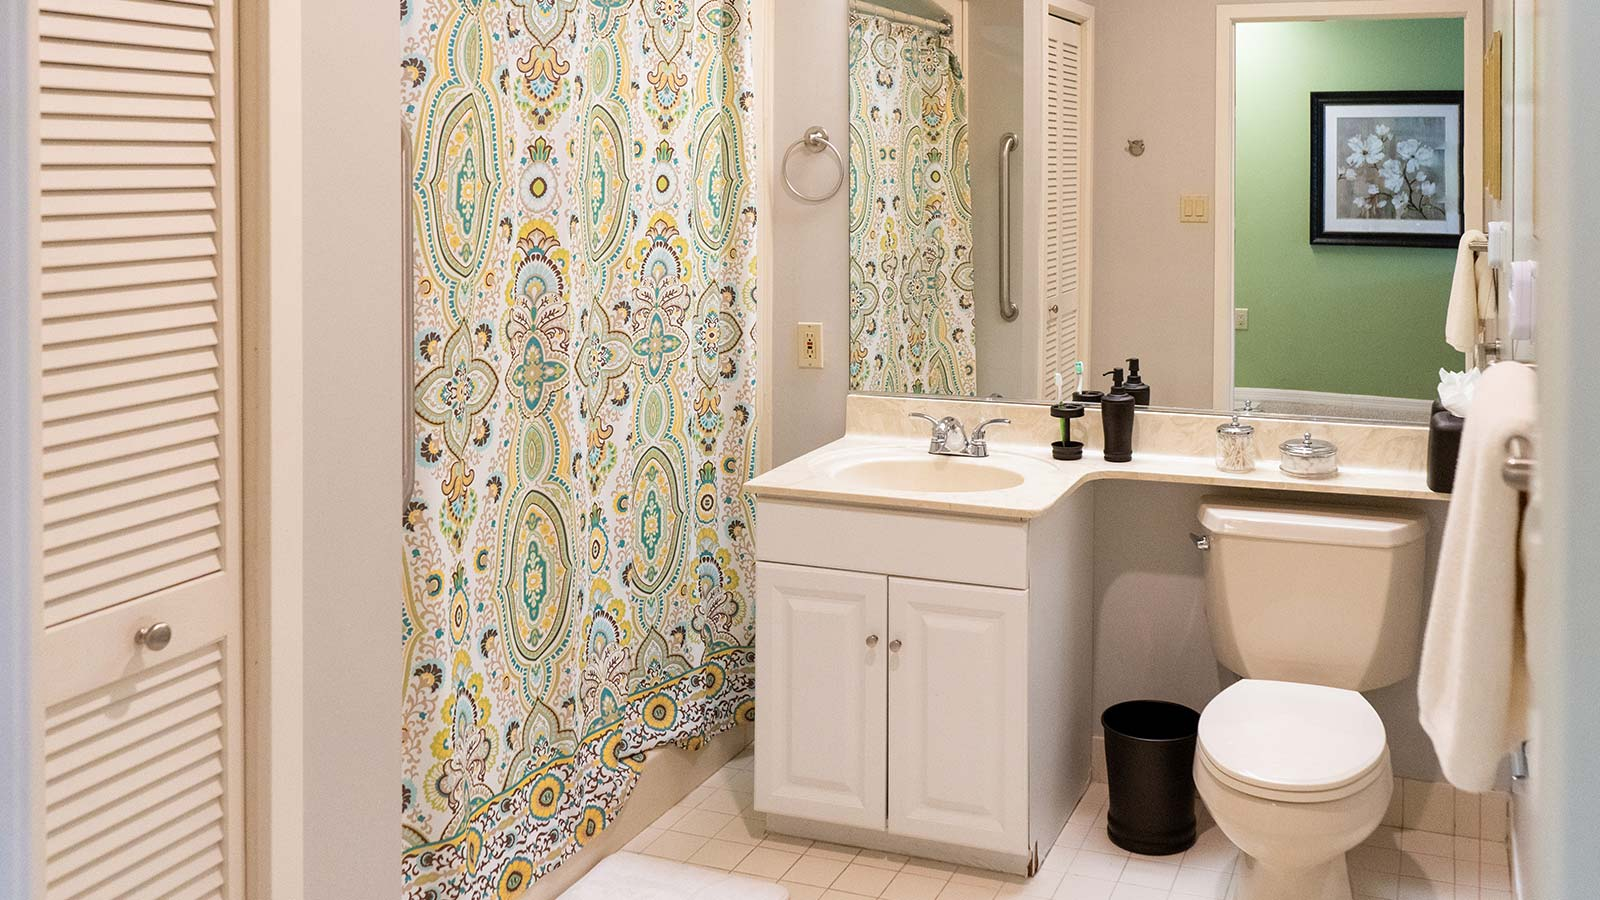 Model apartment bathroom at Heron Club assisted living and memory care in Sarasota Florida